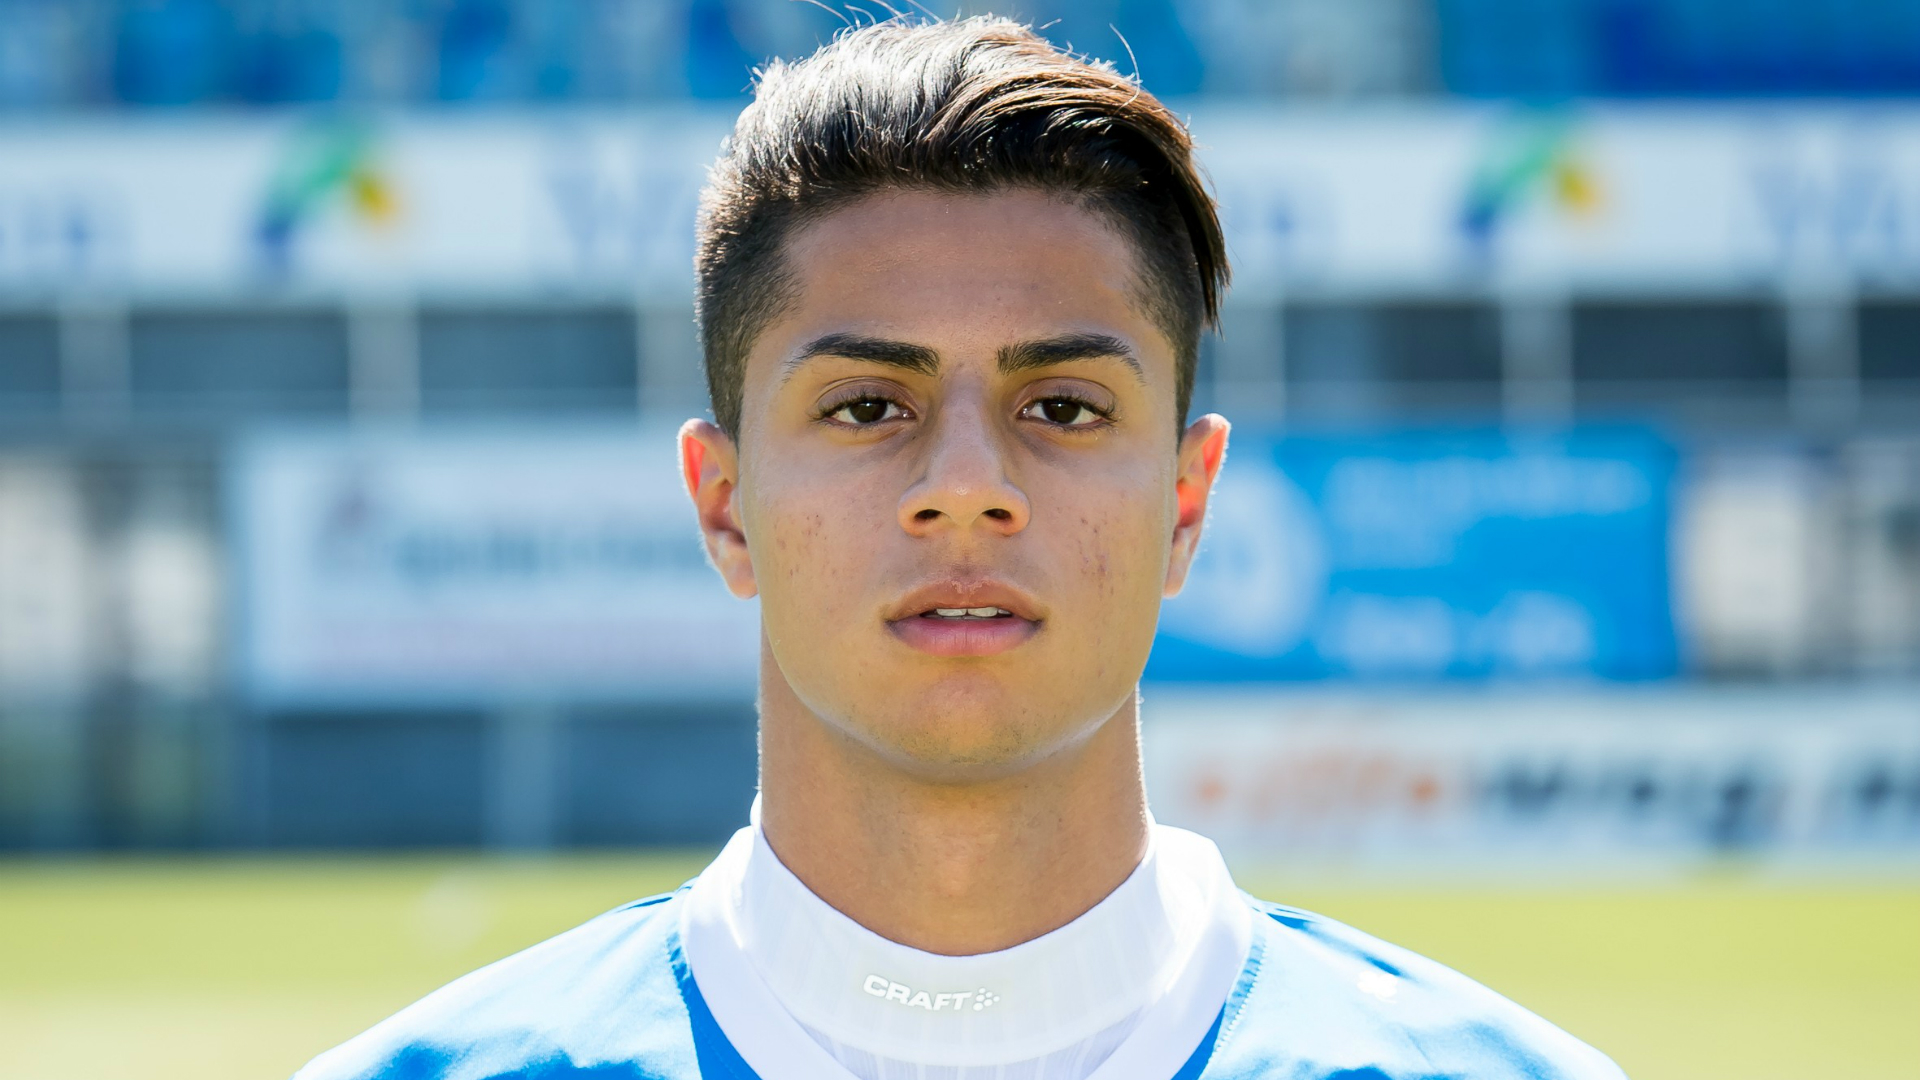 http://images.performgroup.com/di/library/Goal_Netherlands/fb/9f/hachim-mastour-pec-zwolle-eredivisie-20160718_4ia7m9ie2o3x1kf8k0lwid2x8.jpg?t=42111476